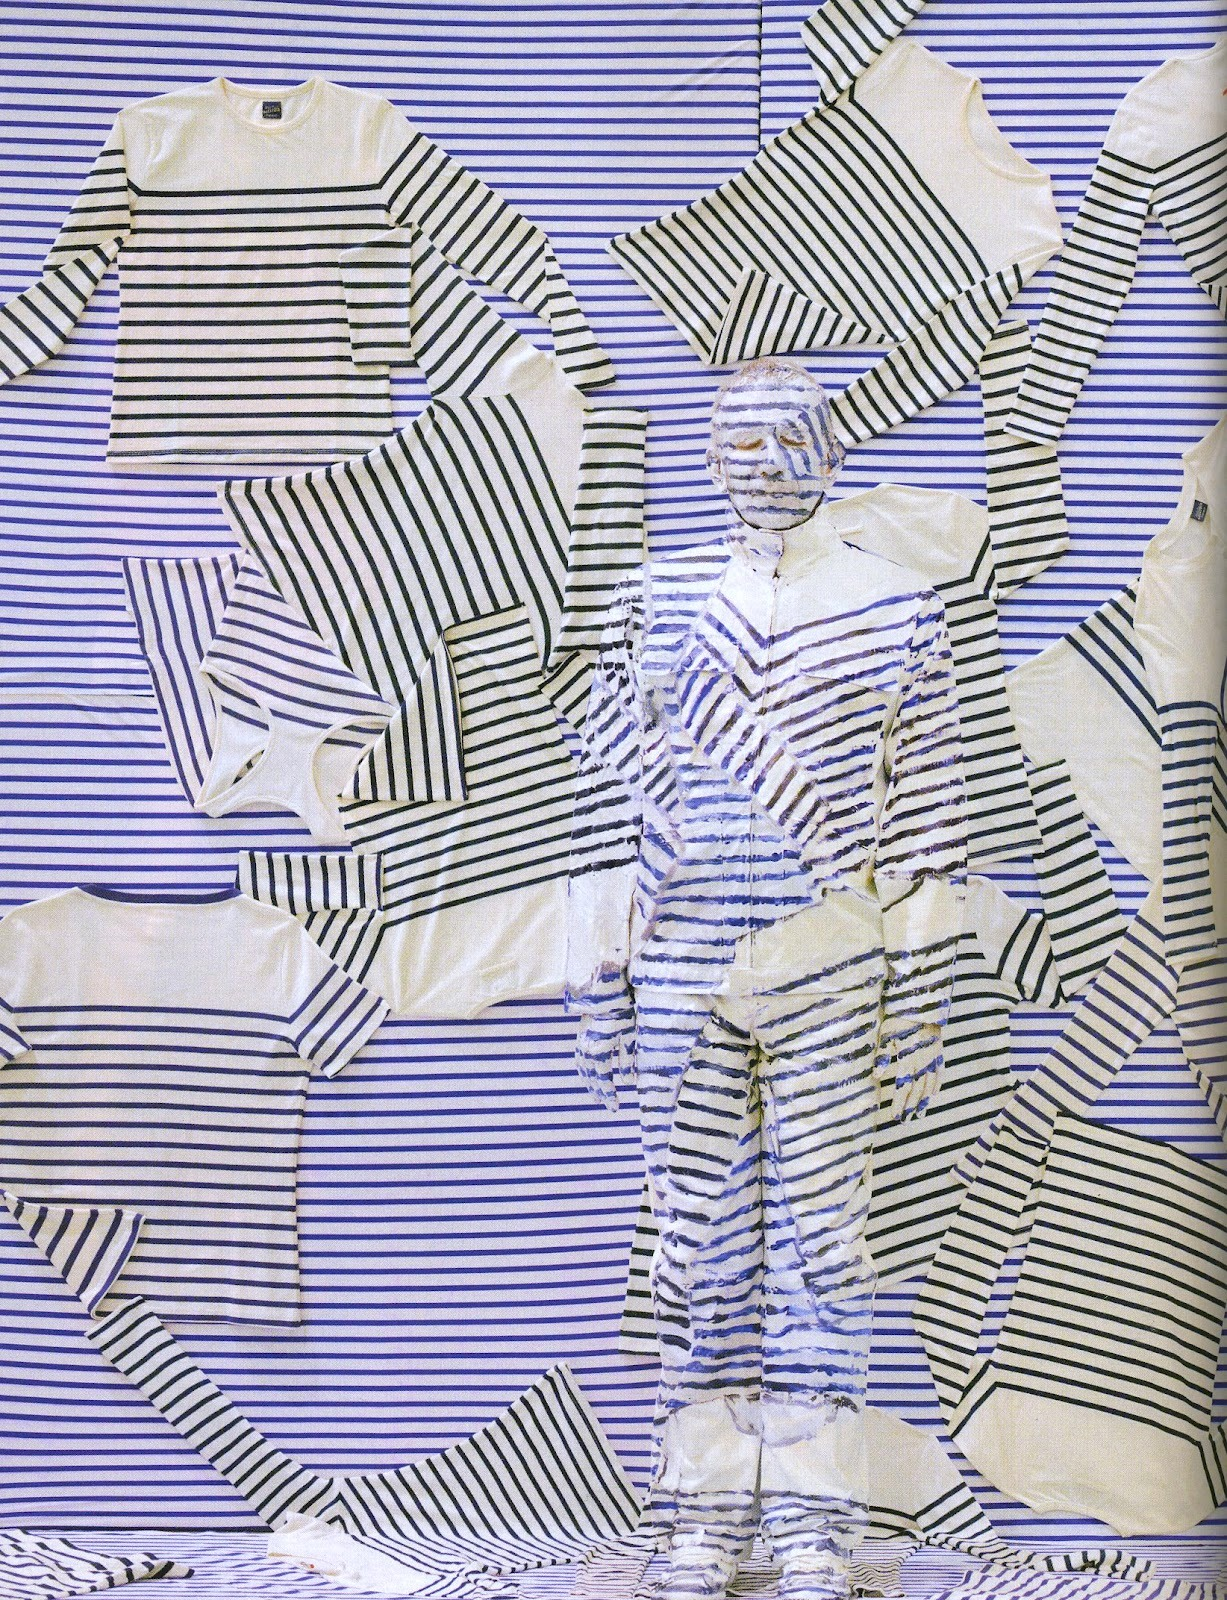 texturism:  jean paul gaultier hidden in his stripes by chinese artist liu biolin, currently exhibiting his mastery at eli klein fine art in soho. - valentineuhovski | via thatluciegirl